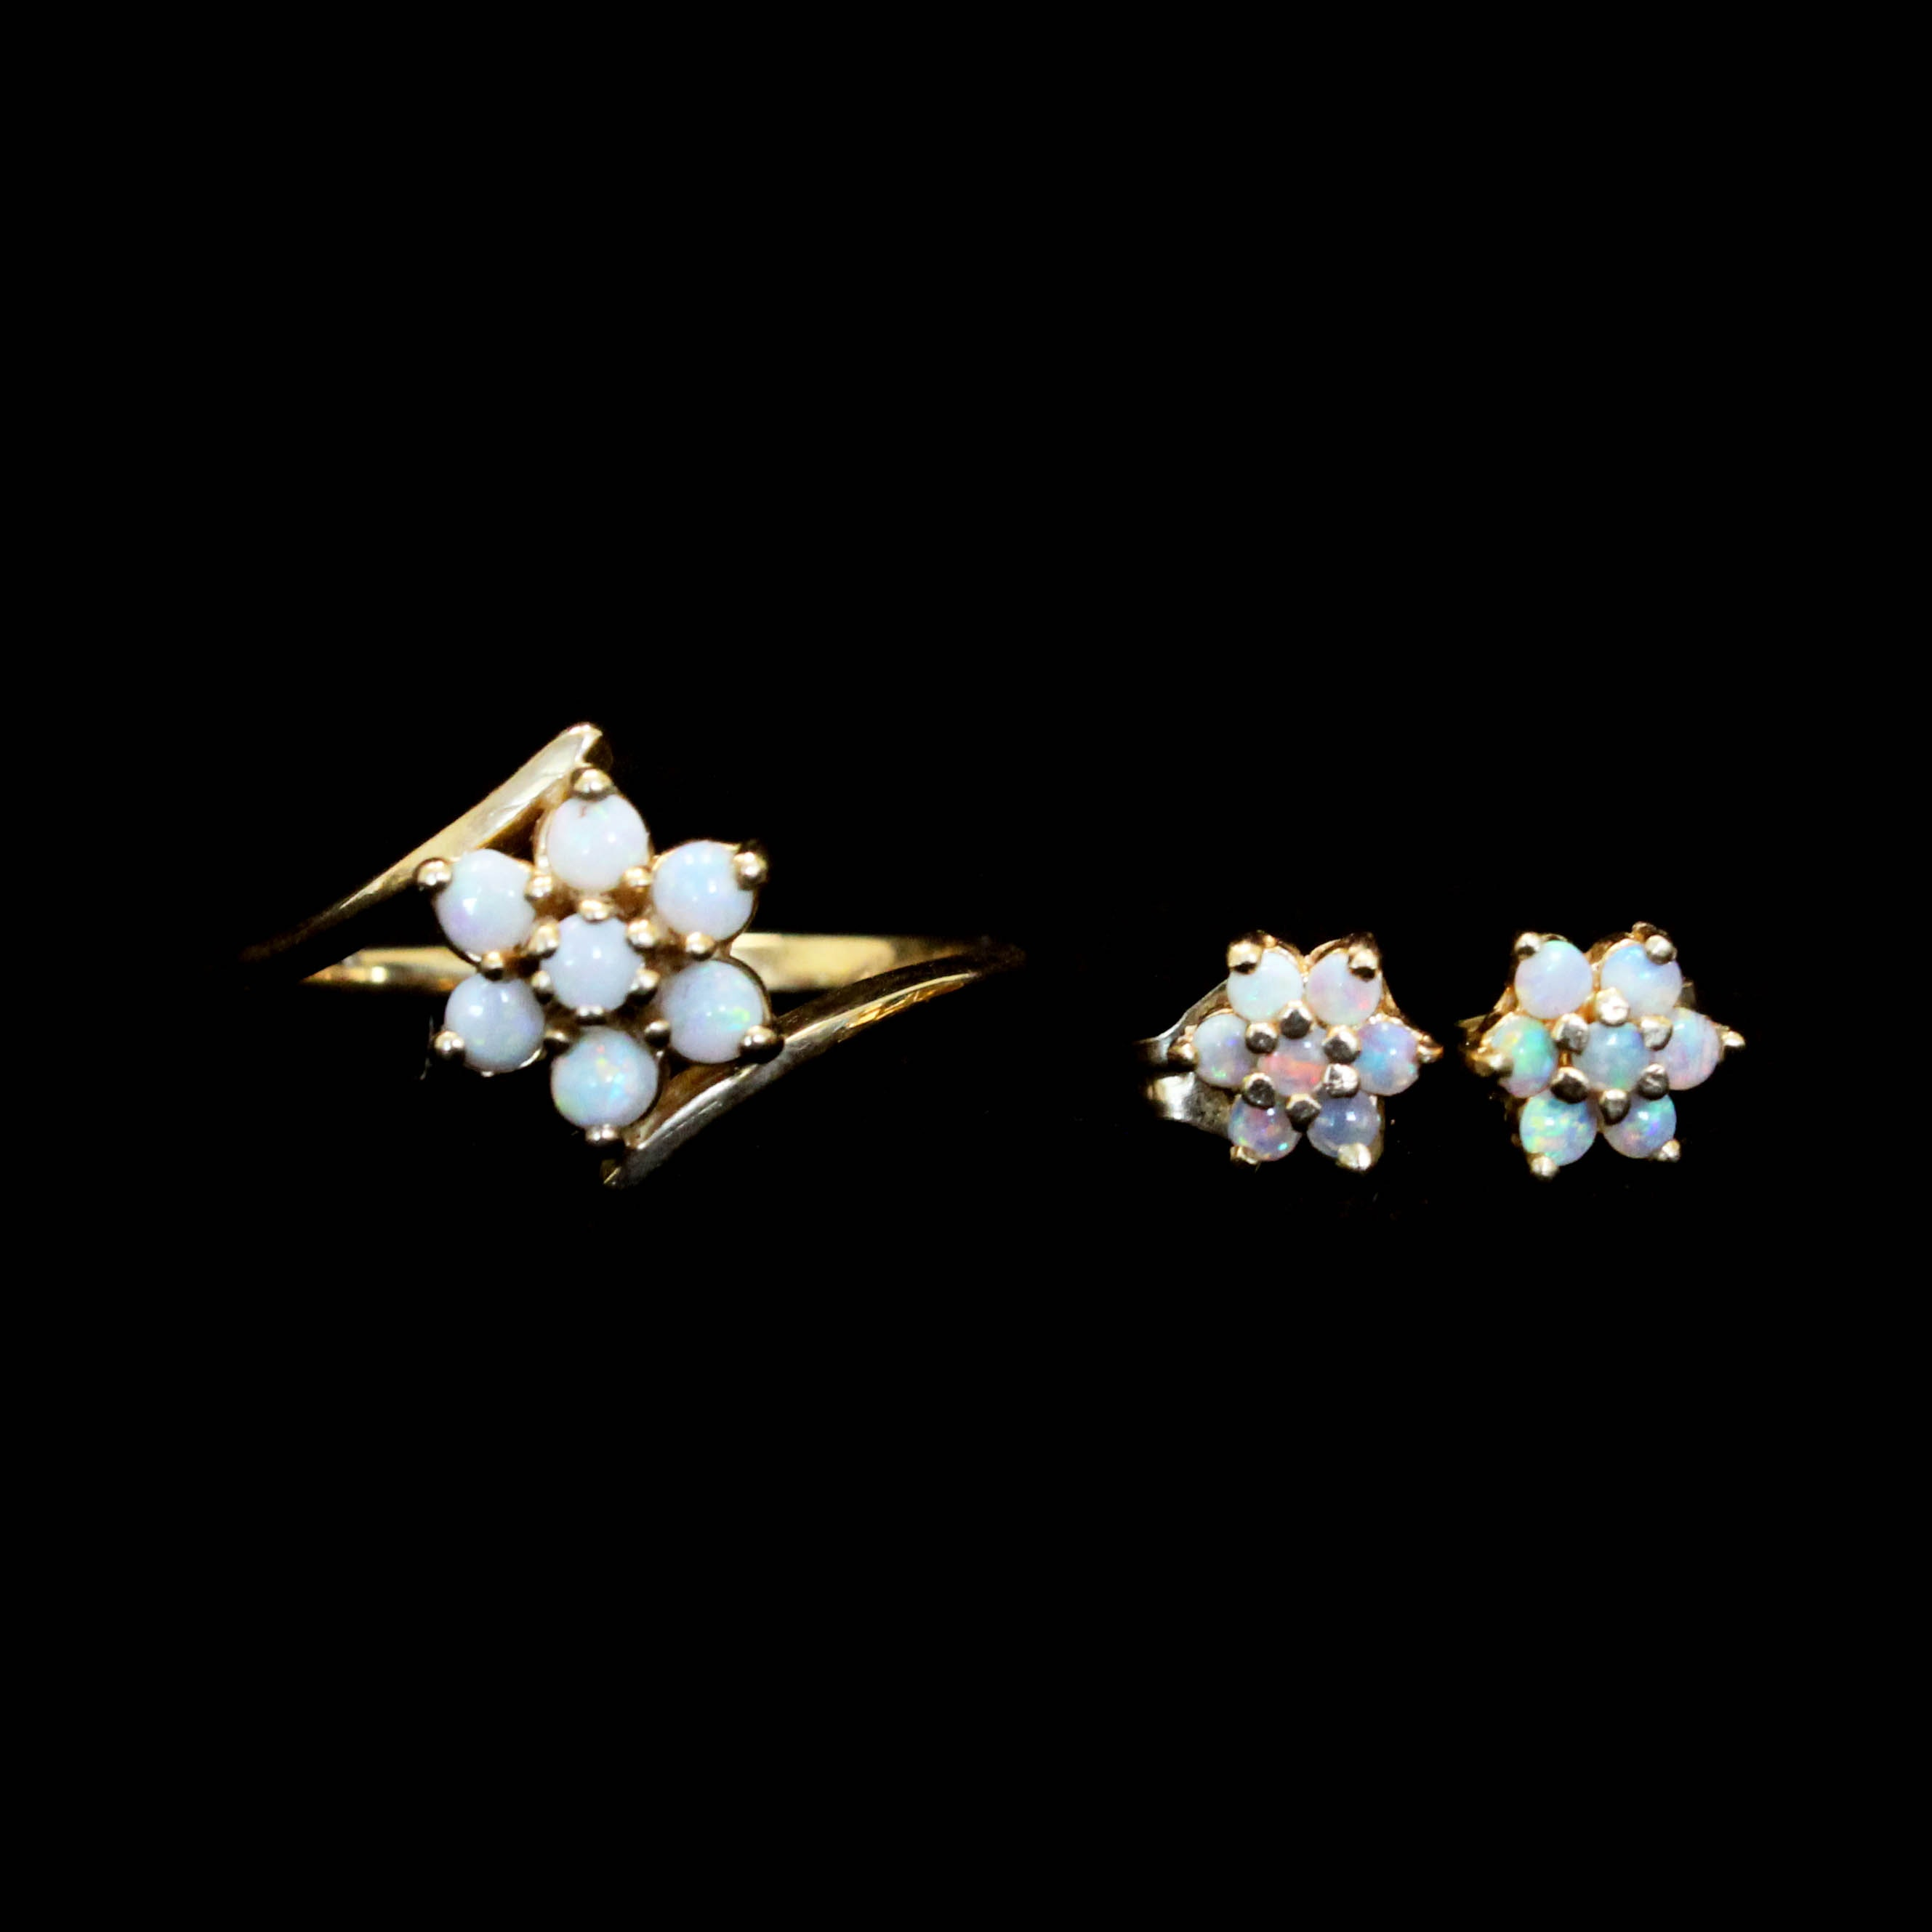 Yellow Gold Ring and Earrings with Opals